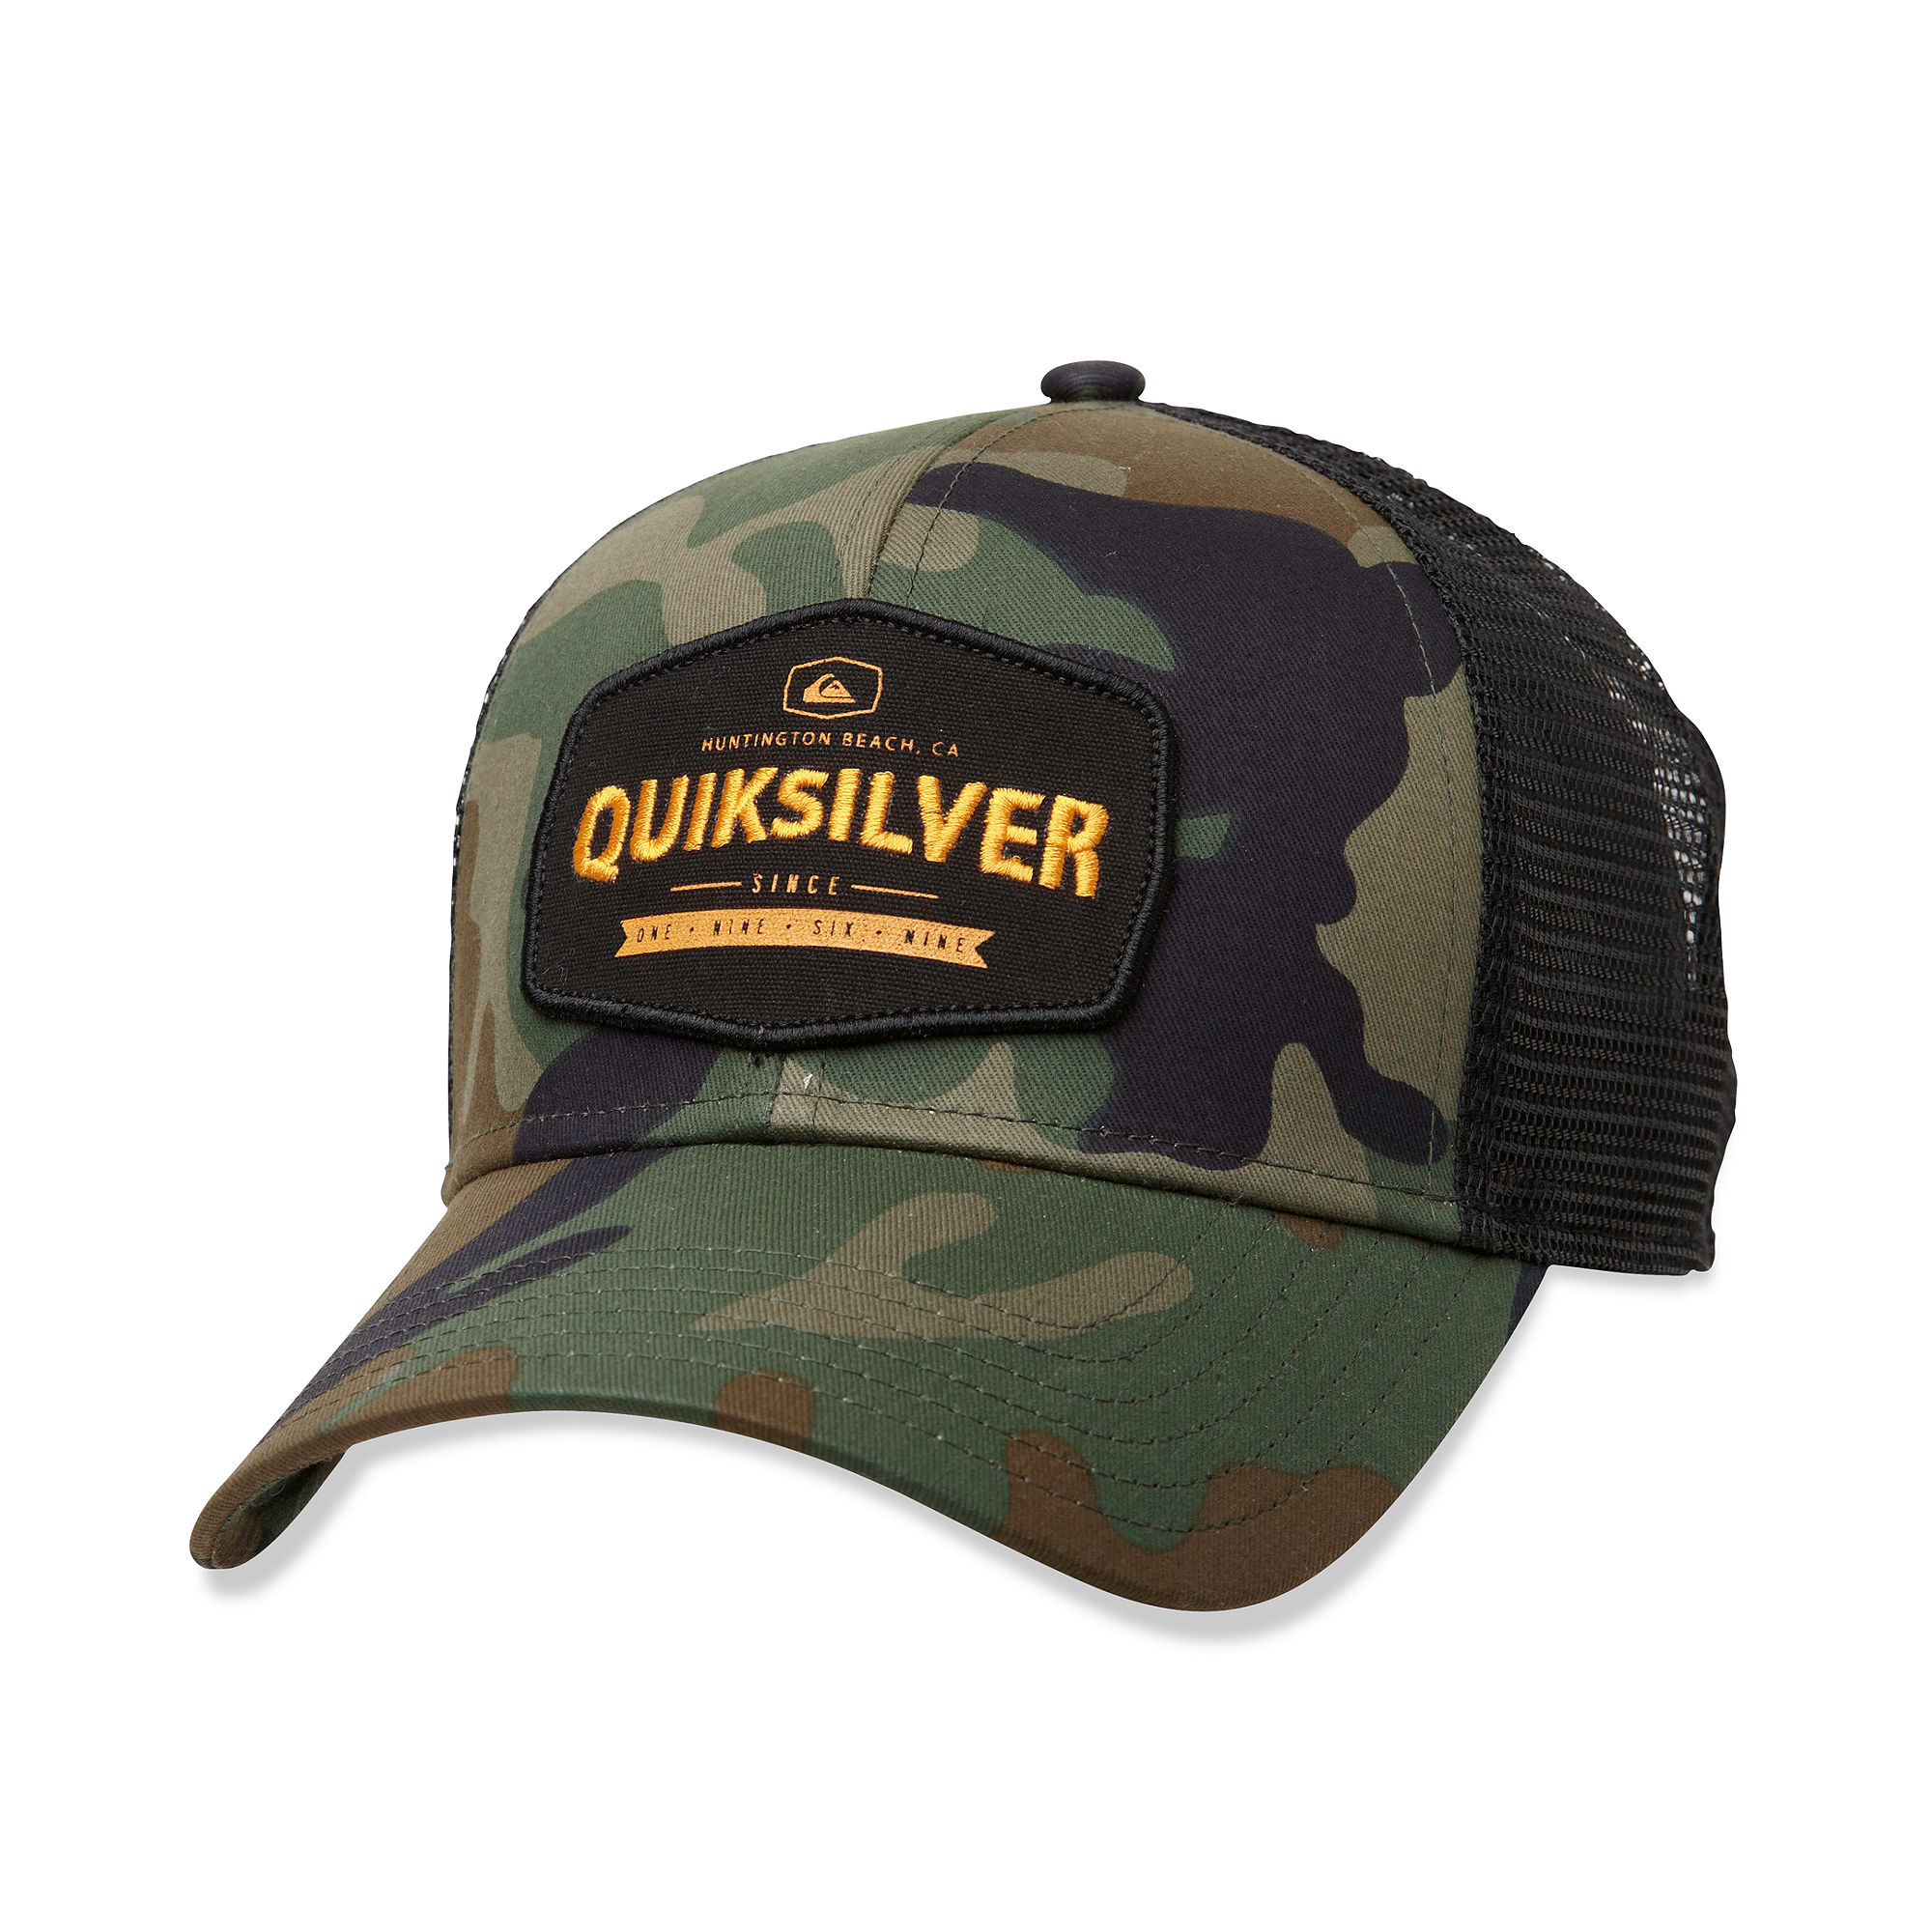 Lyst - Quiksilver Please Hold Graphic Trucker Hat in Green for Men 400bf25ef34